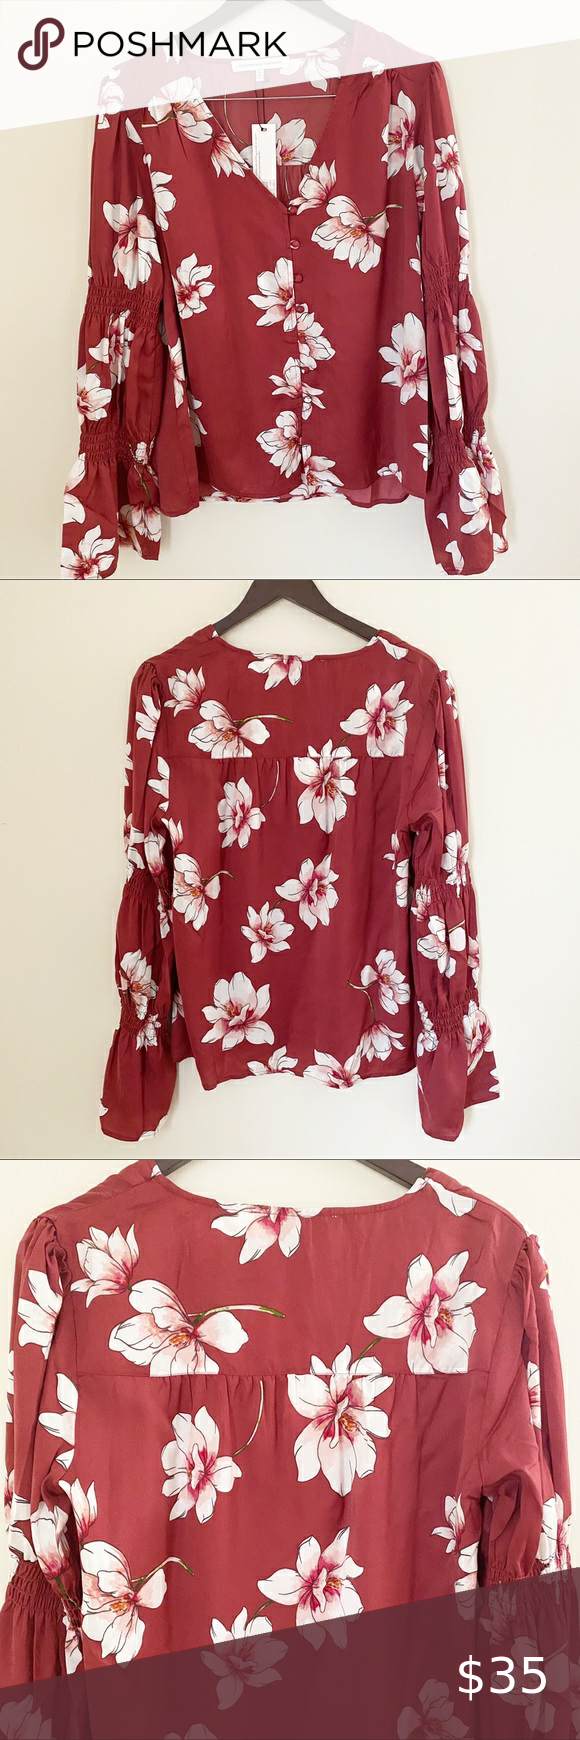 Nwt Cupcakes And Cashmere Floral Print Blouse Floral Print Blouses Printed Blouse Cupcakes And Cashmere [ 1740 x 580 Pixel ]